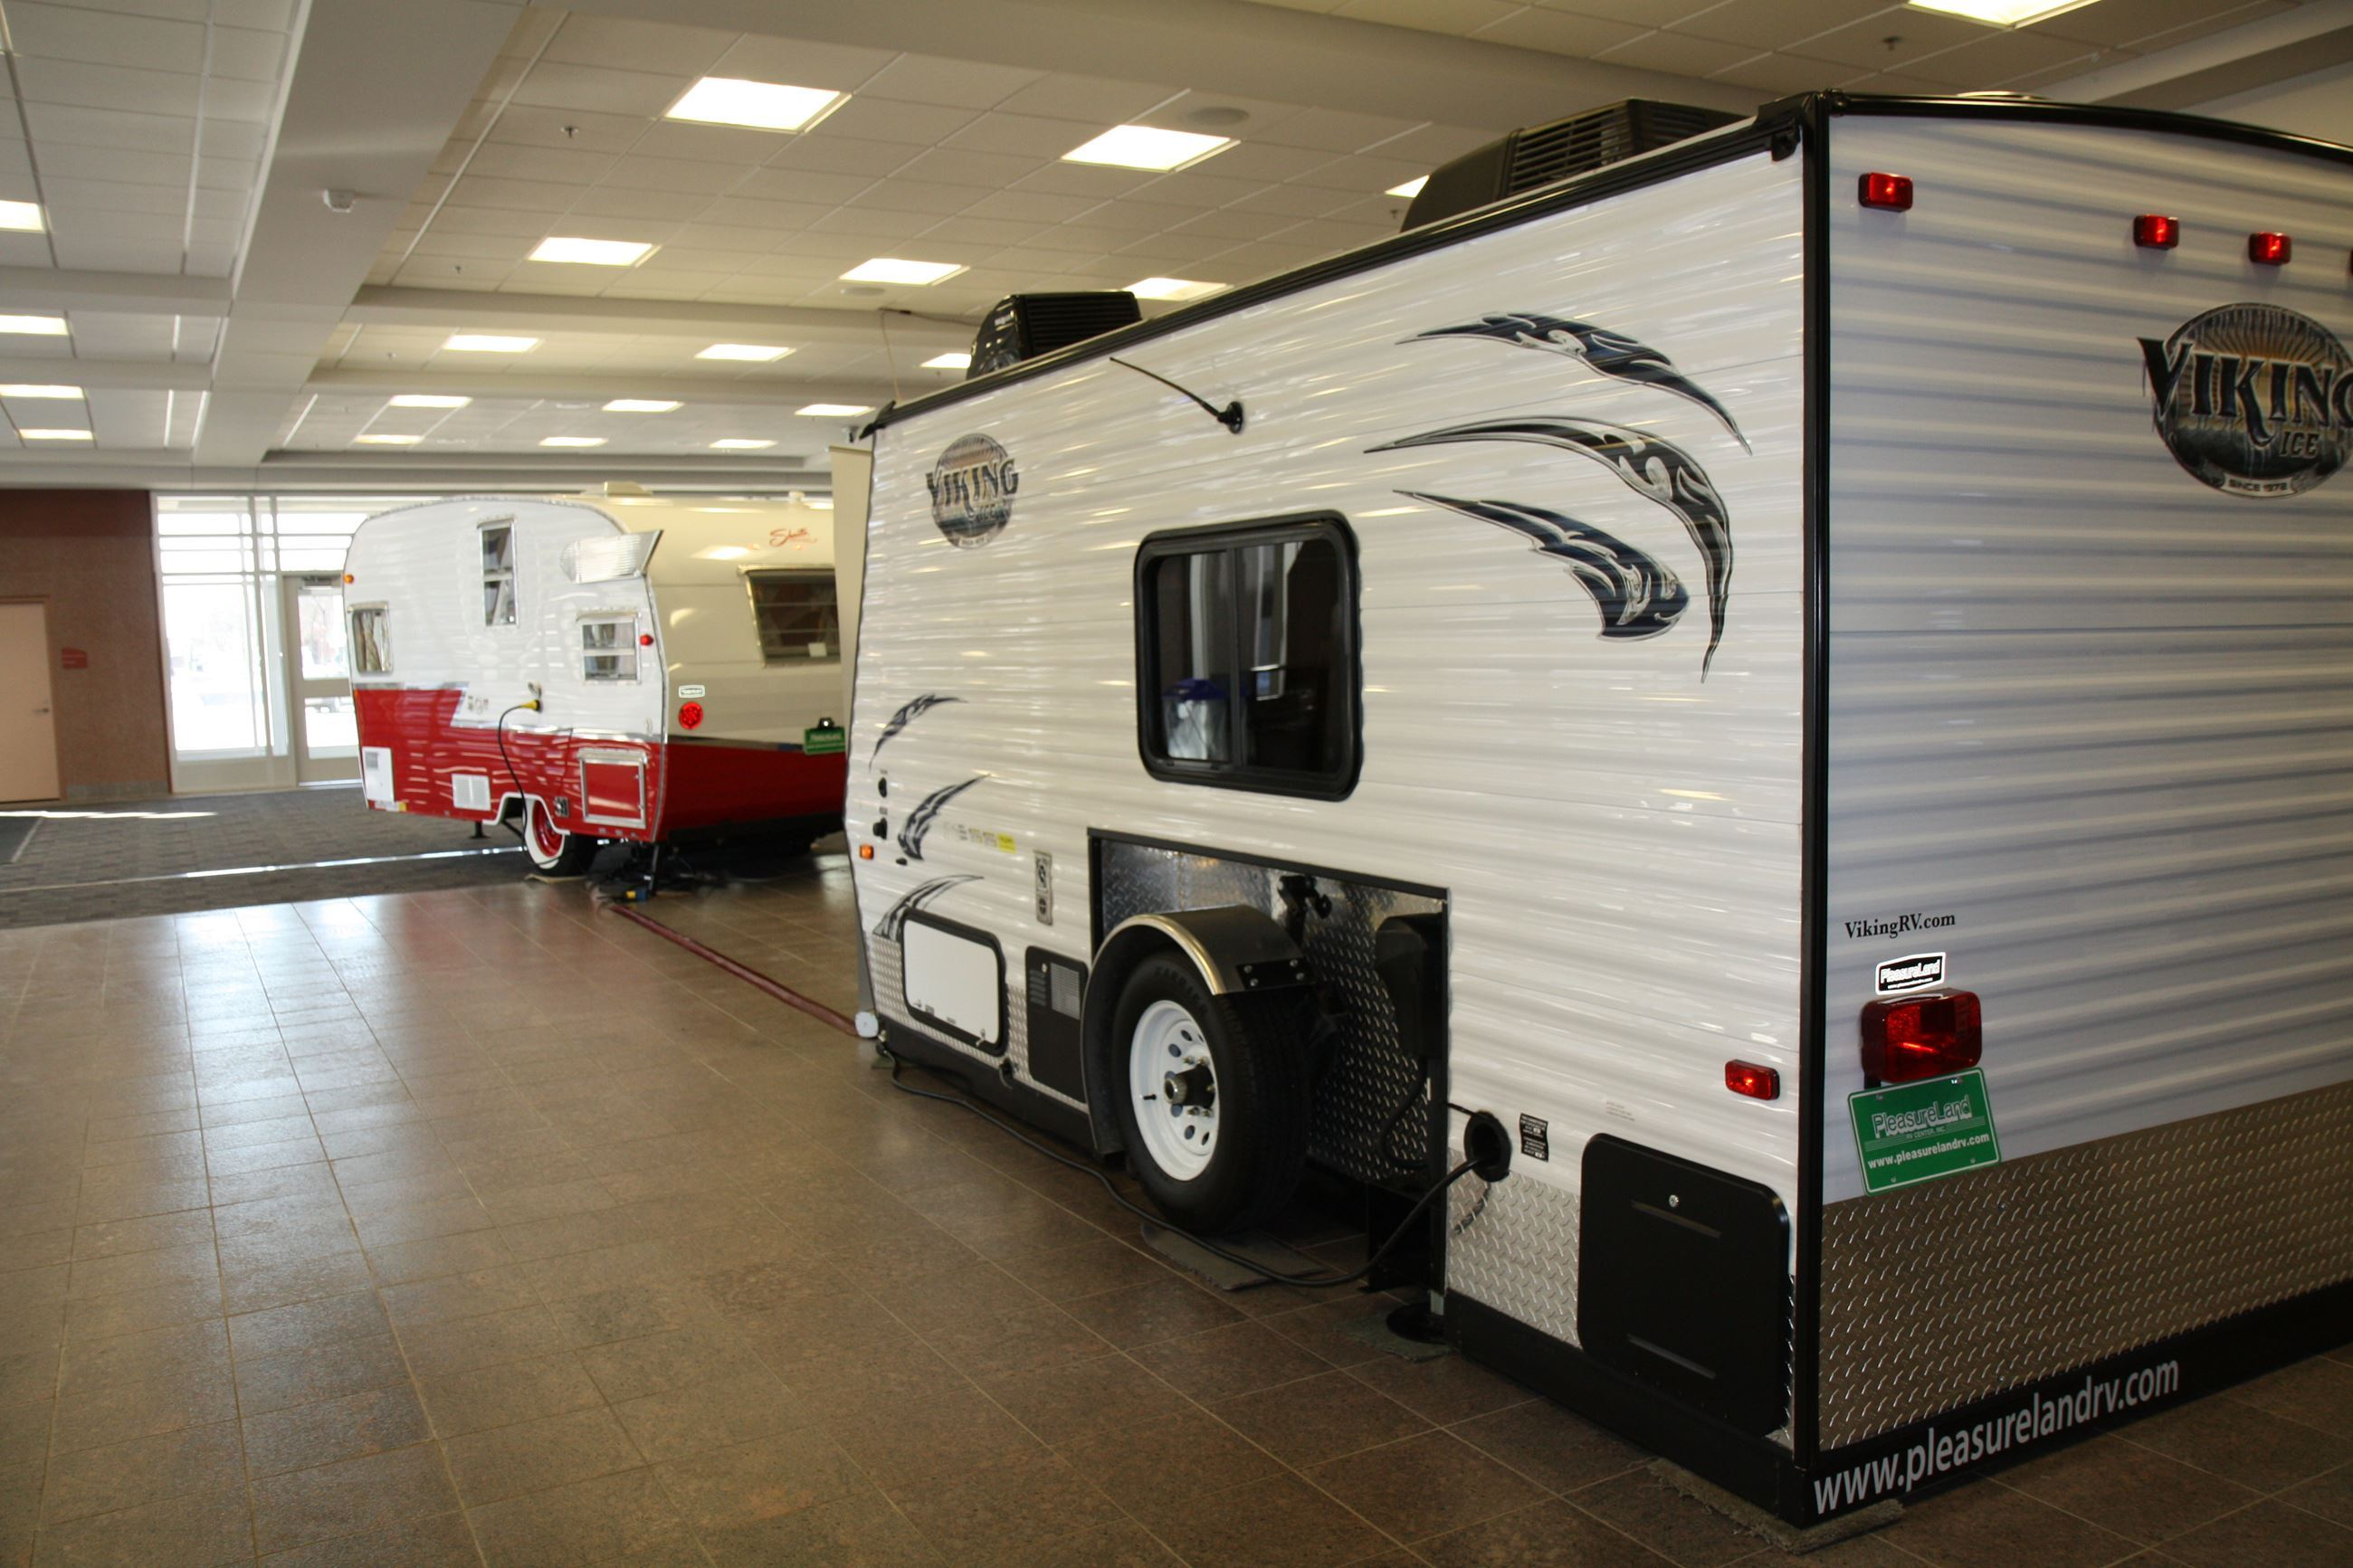 Two recreational vehicles parked in convention hall lobby